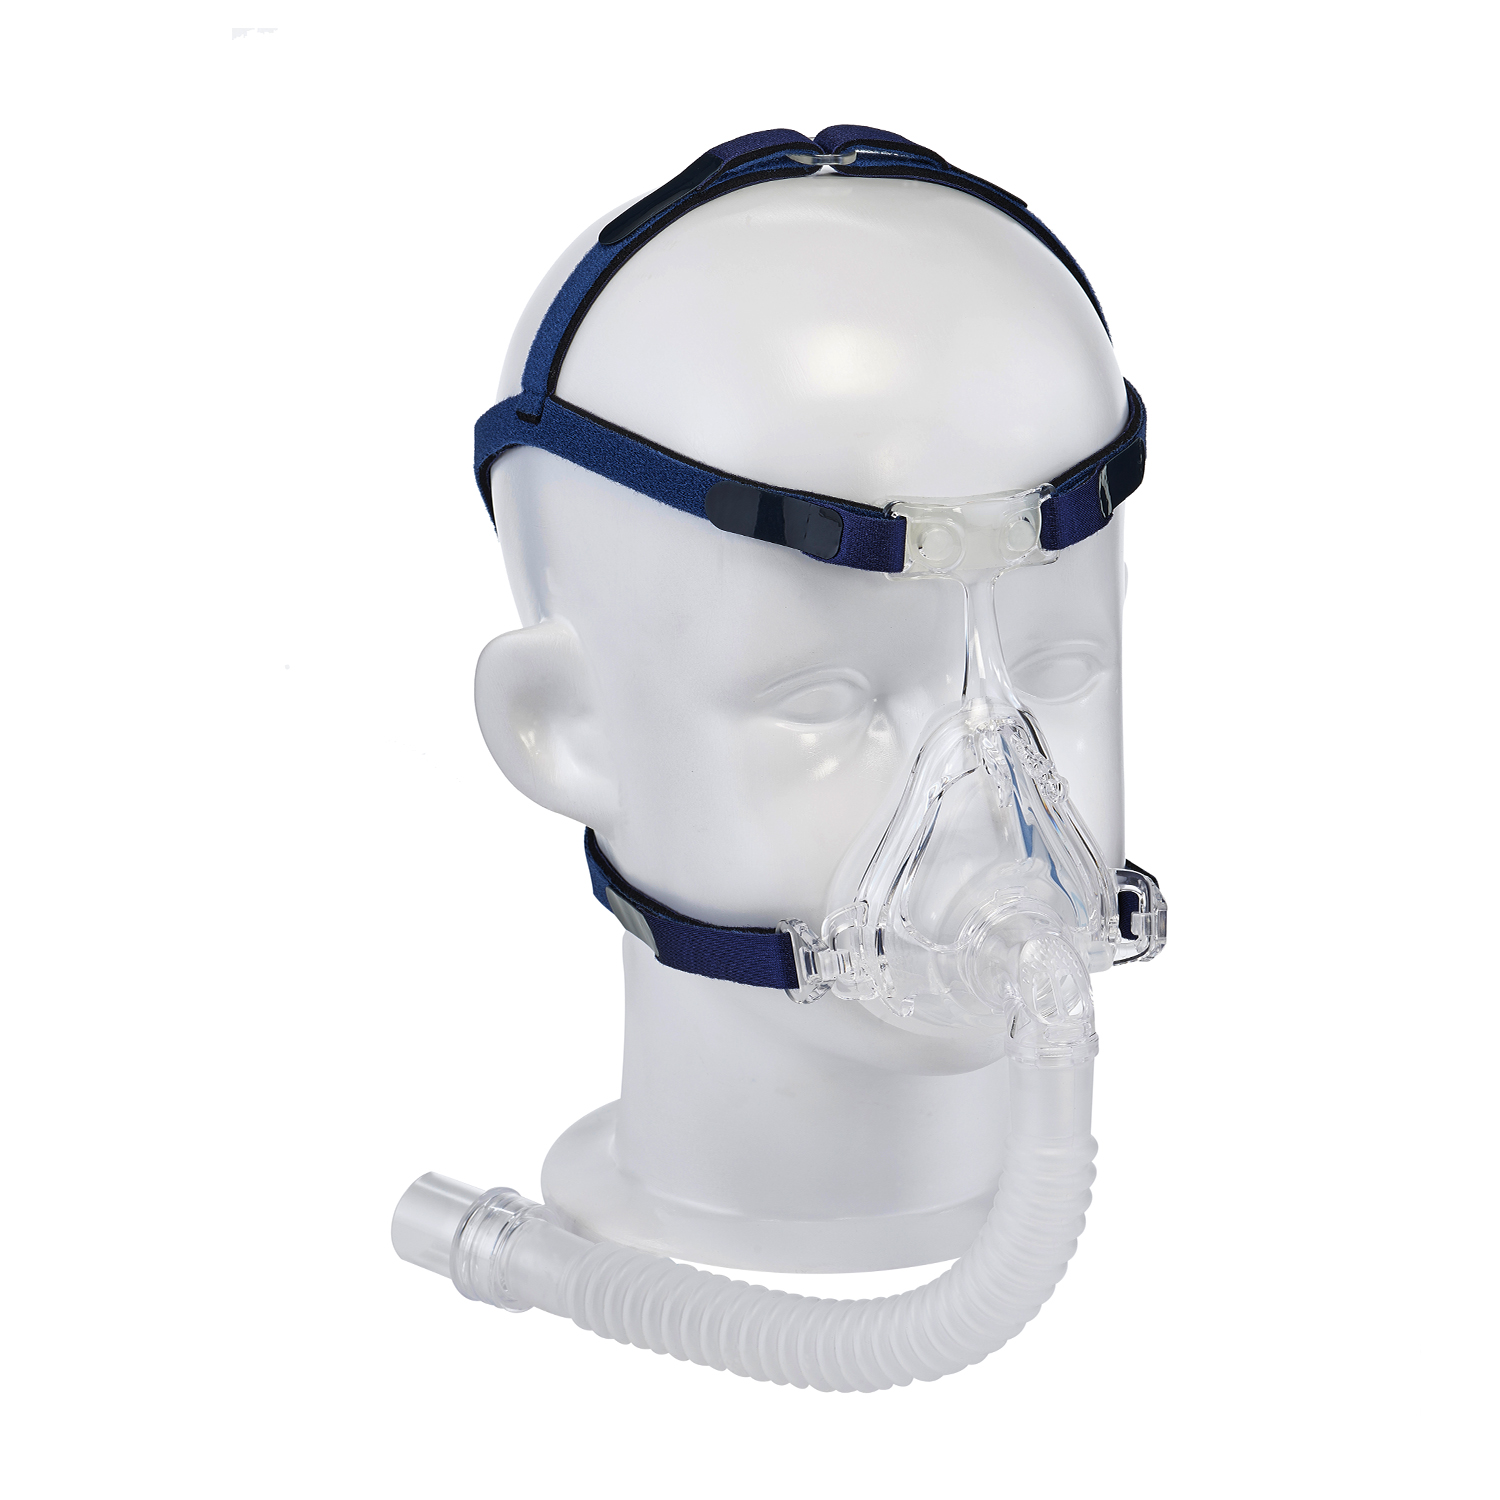 AG-PEDFF-M Nonny™ Full Face Pediatric CPAP Mask product photo